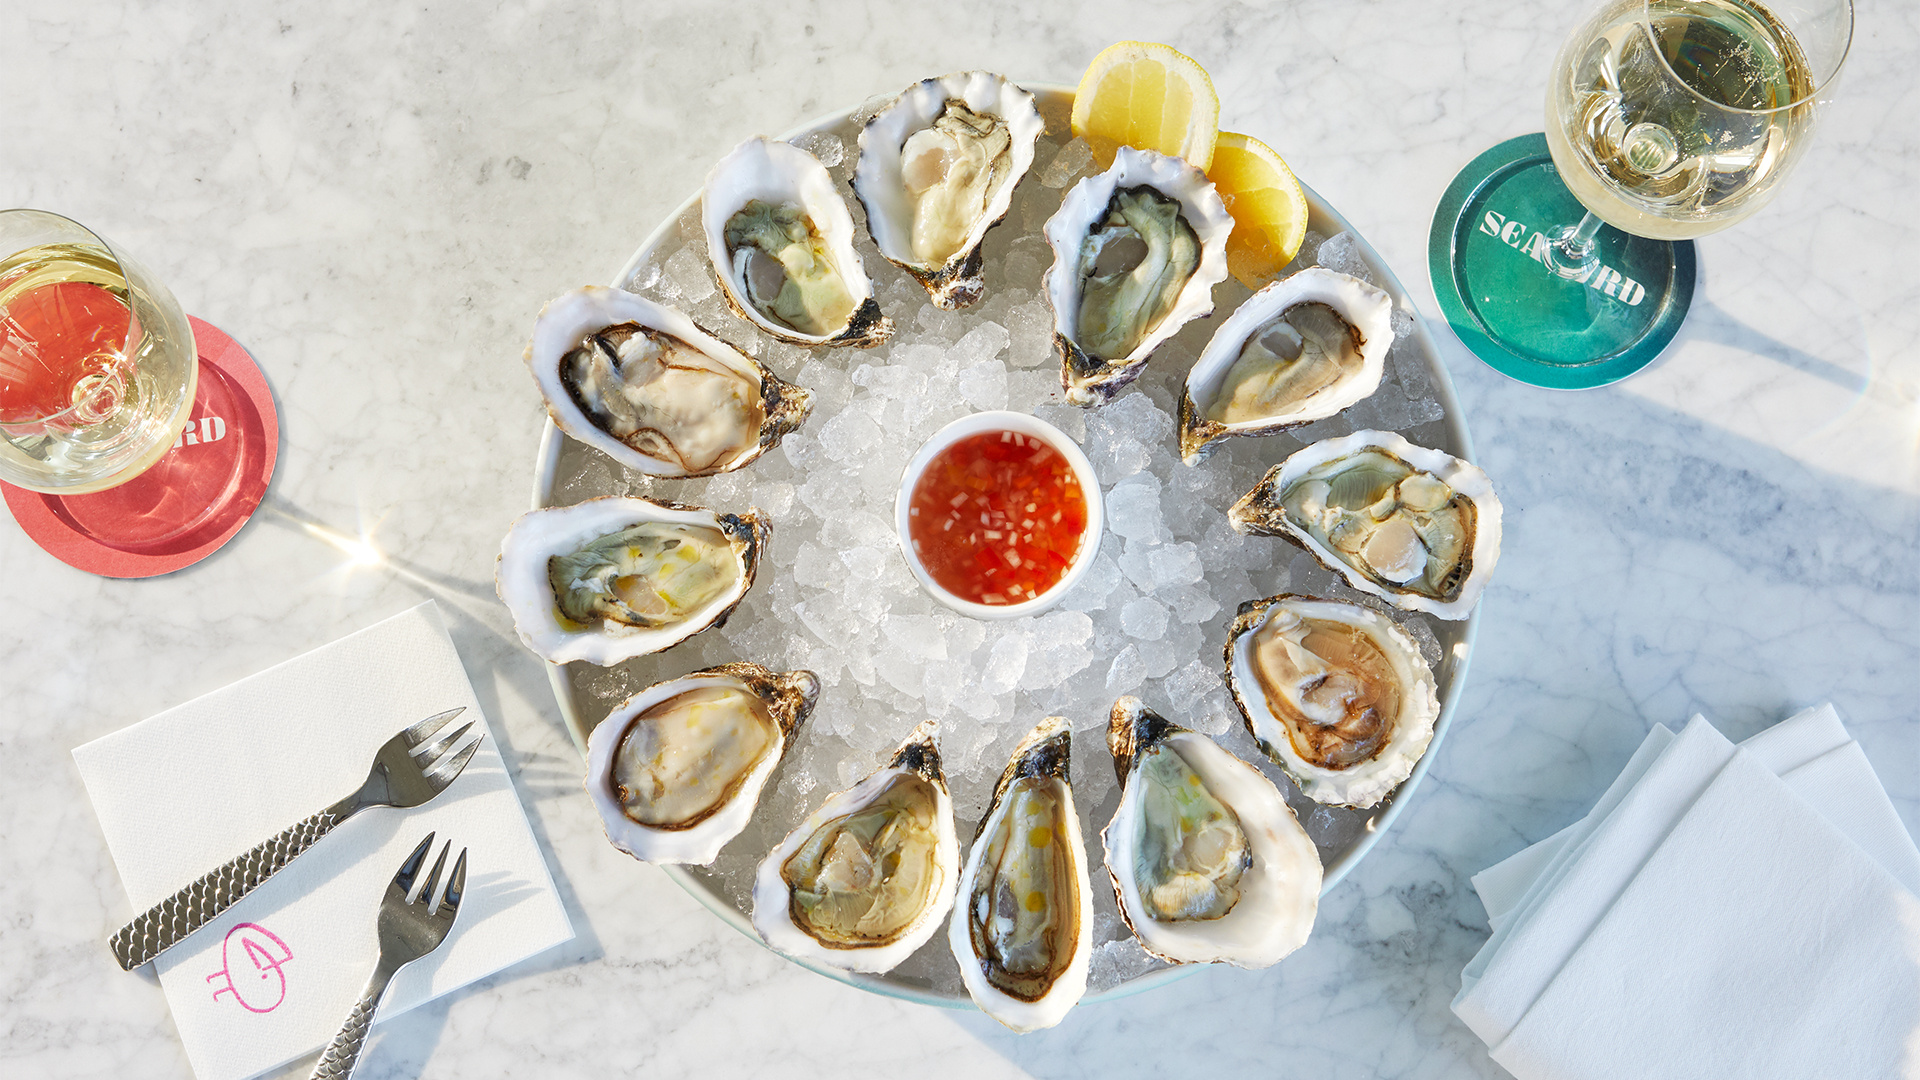 Seabird restaurant: the oysters